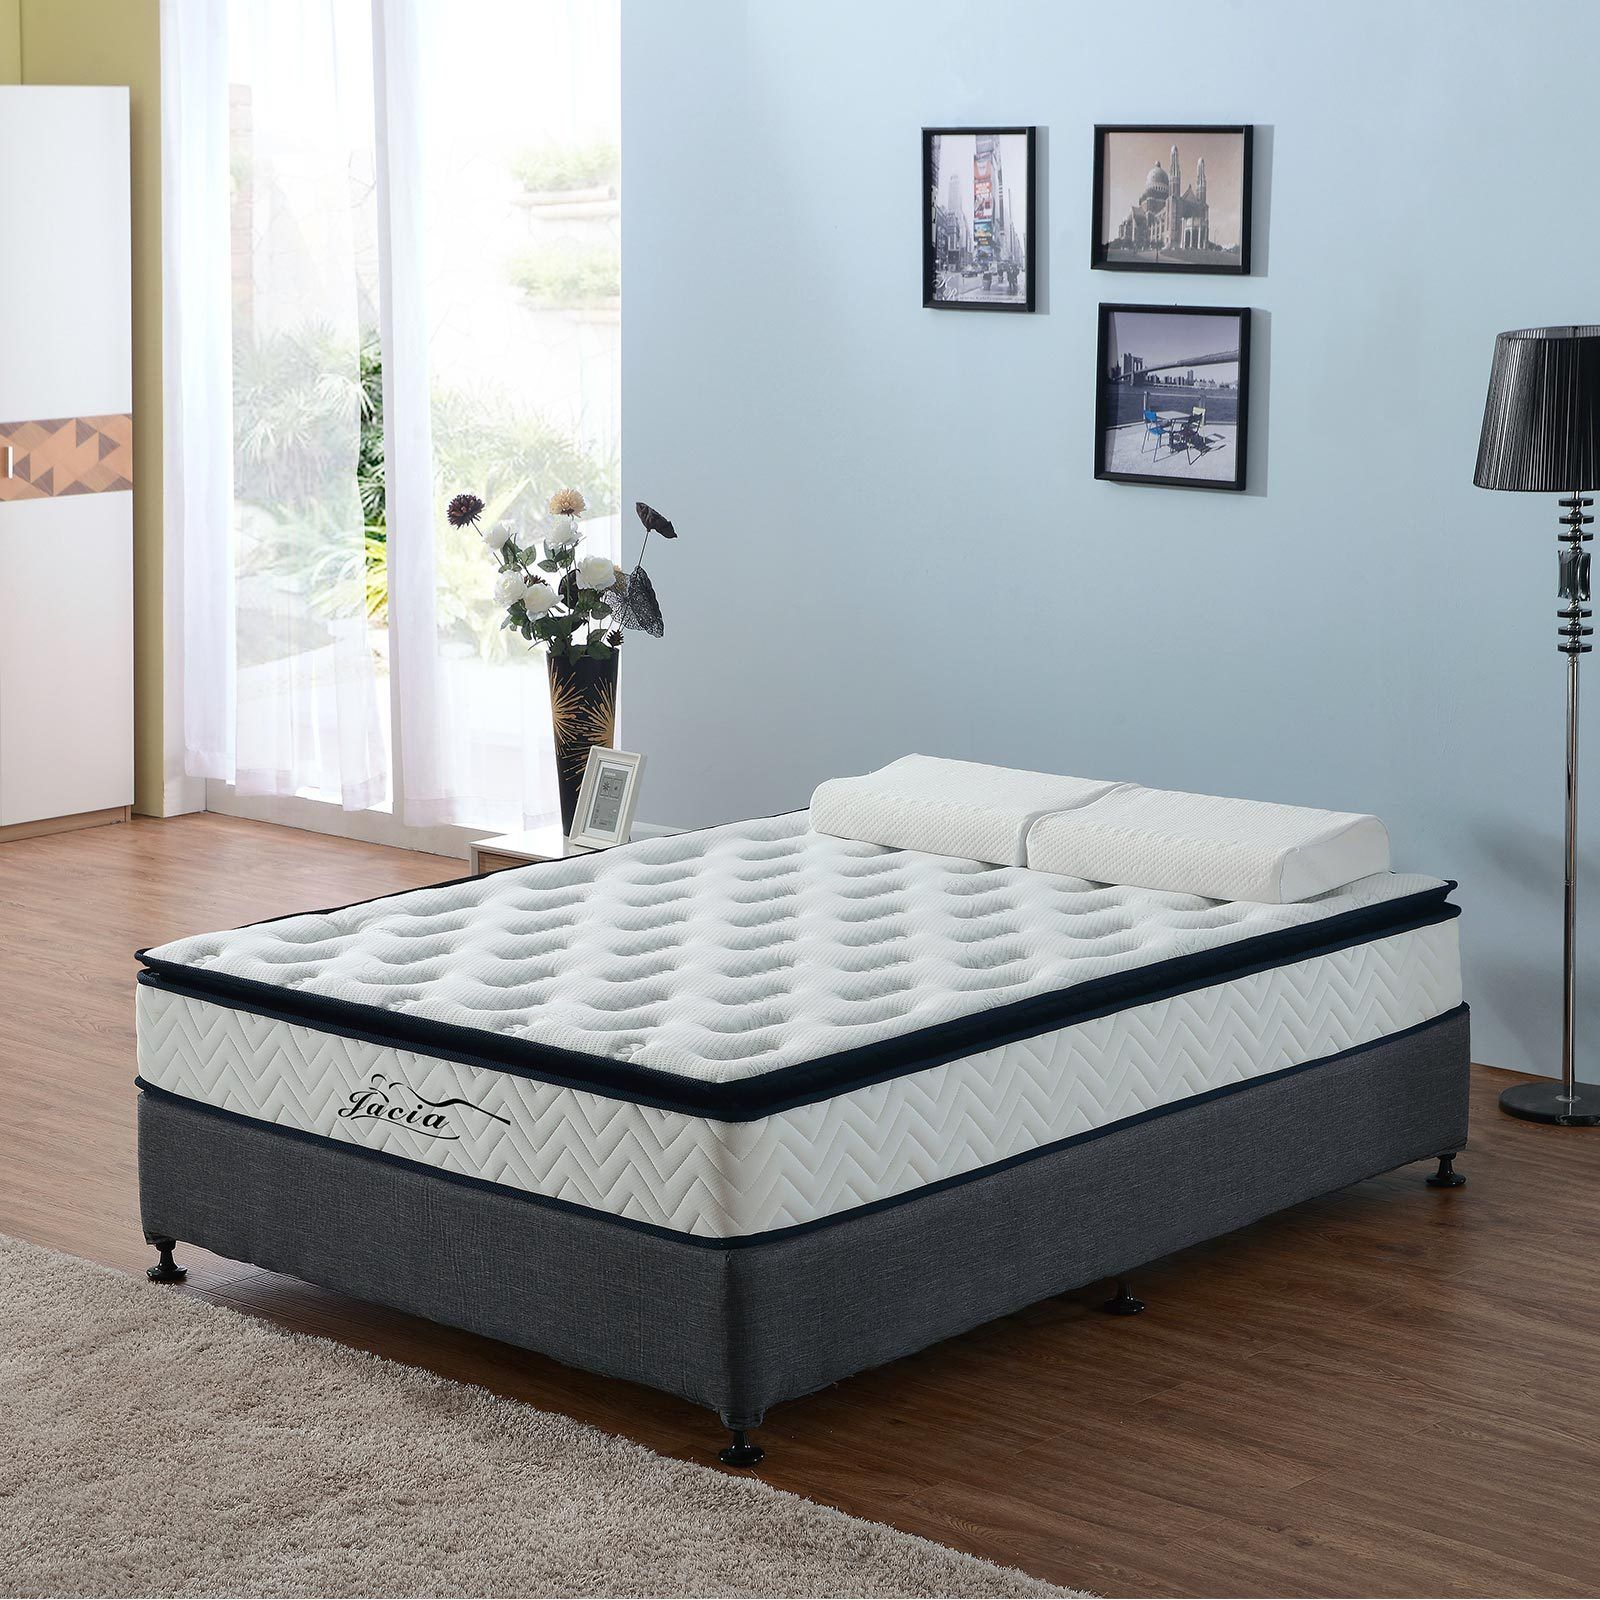 details about mattress latex queen double king size 7 zone pocket